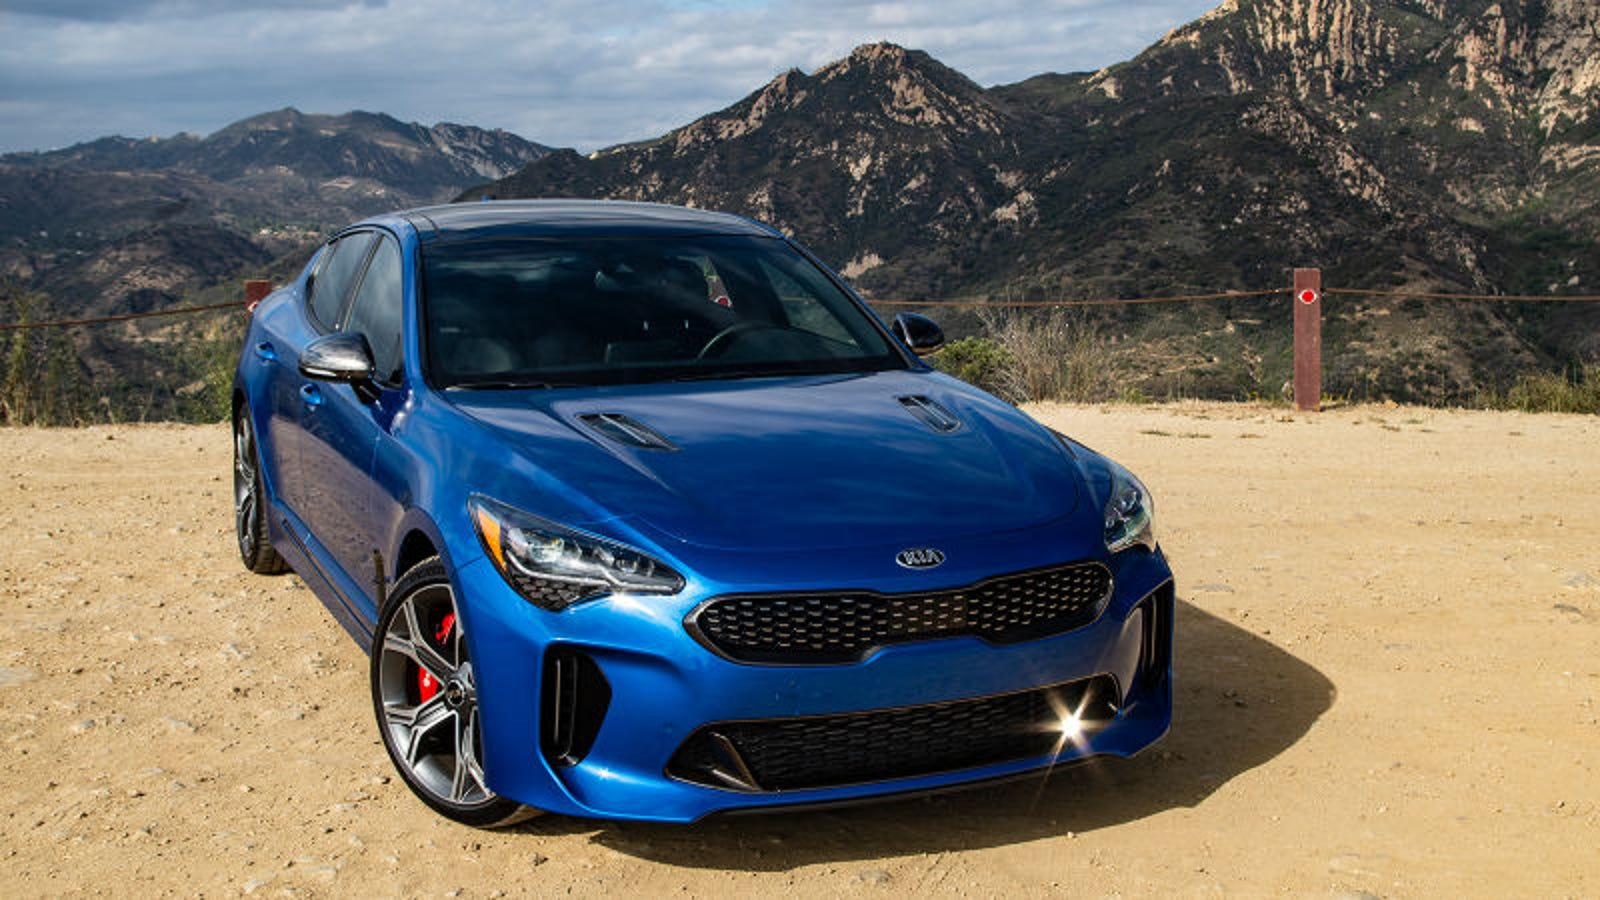 stinger kia cars gt nice could stingers jalopnik versus week auto techkee shit awesome loan cheaper something into progressive